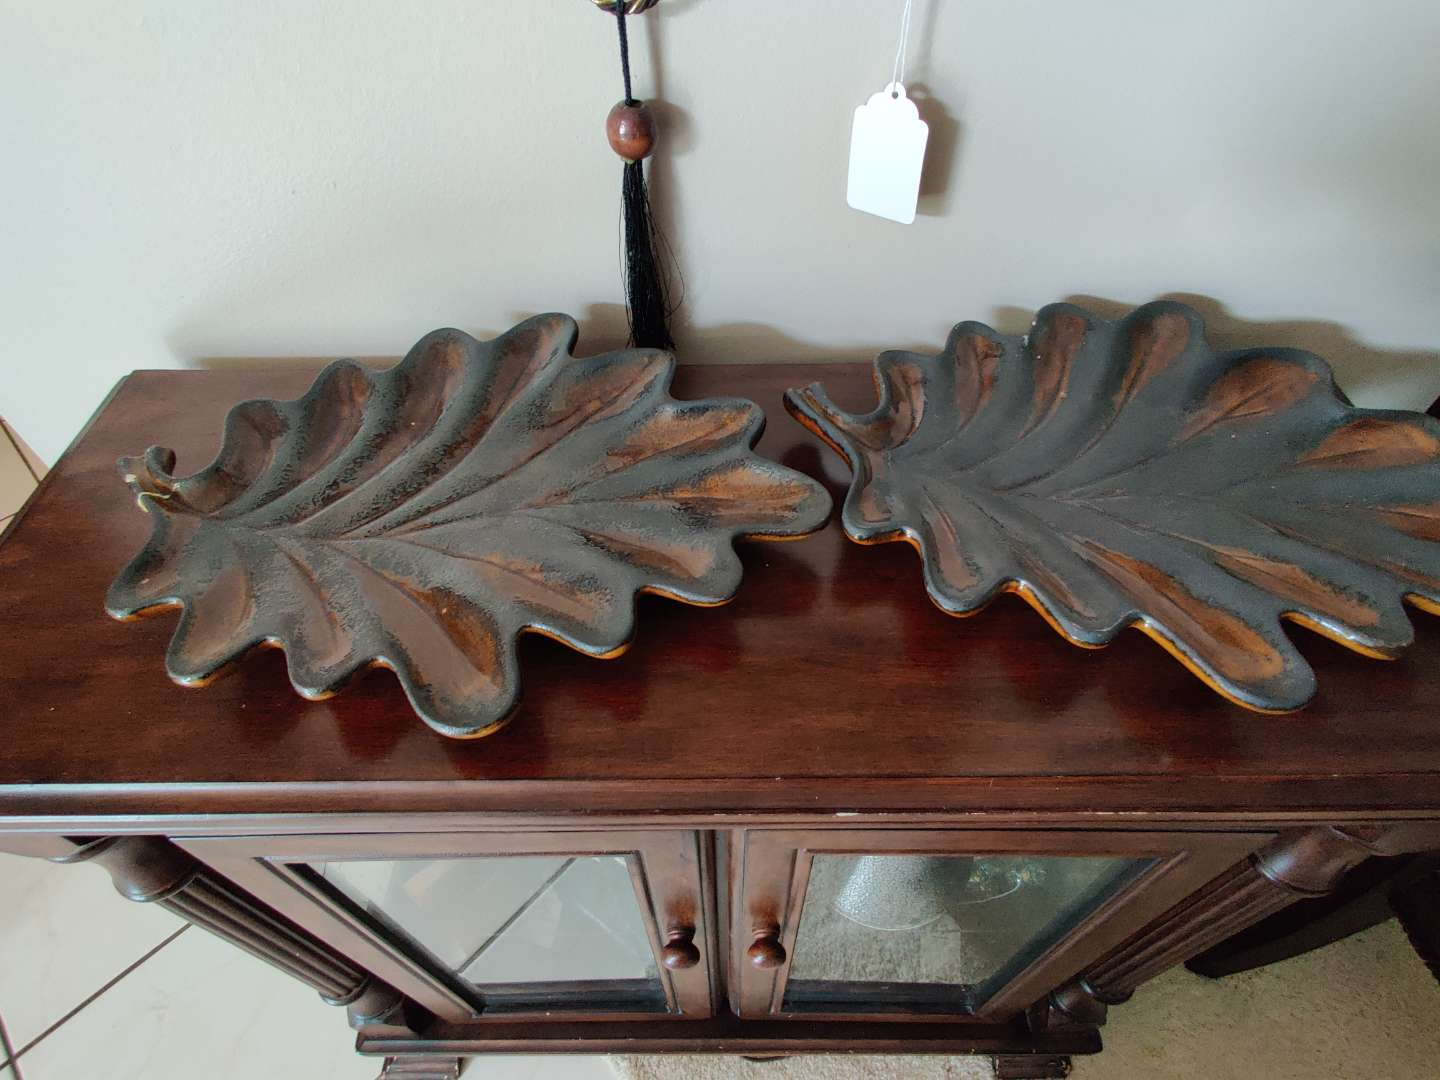 210 pair of leaf dishes 15 in Long $44 each on bottom one has been repaired